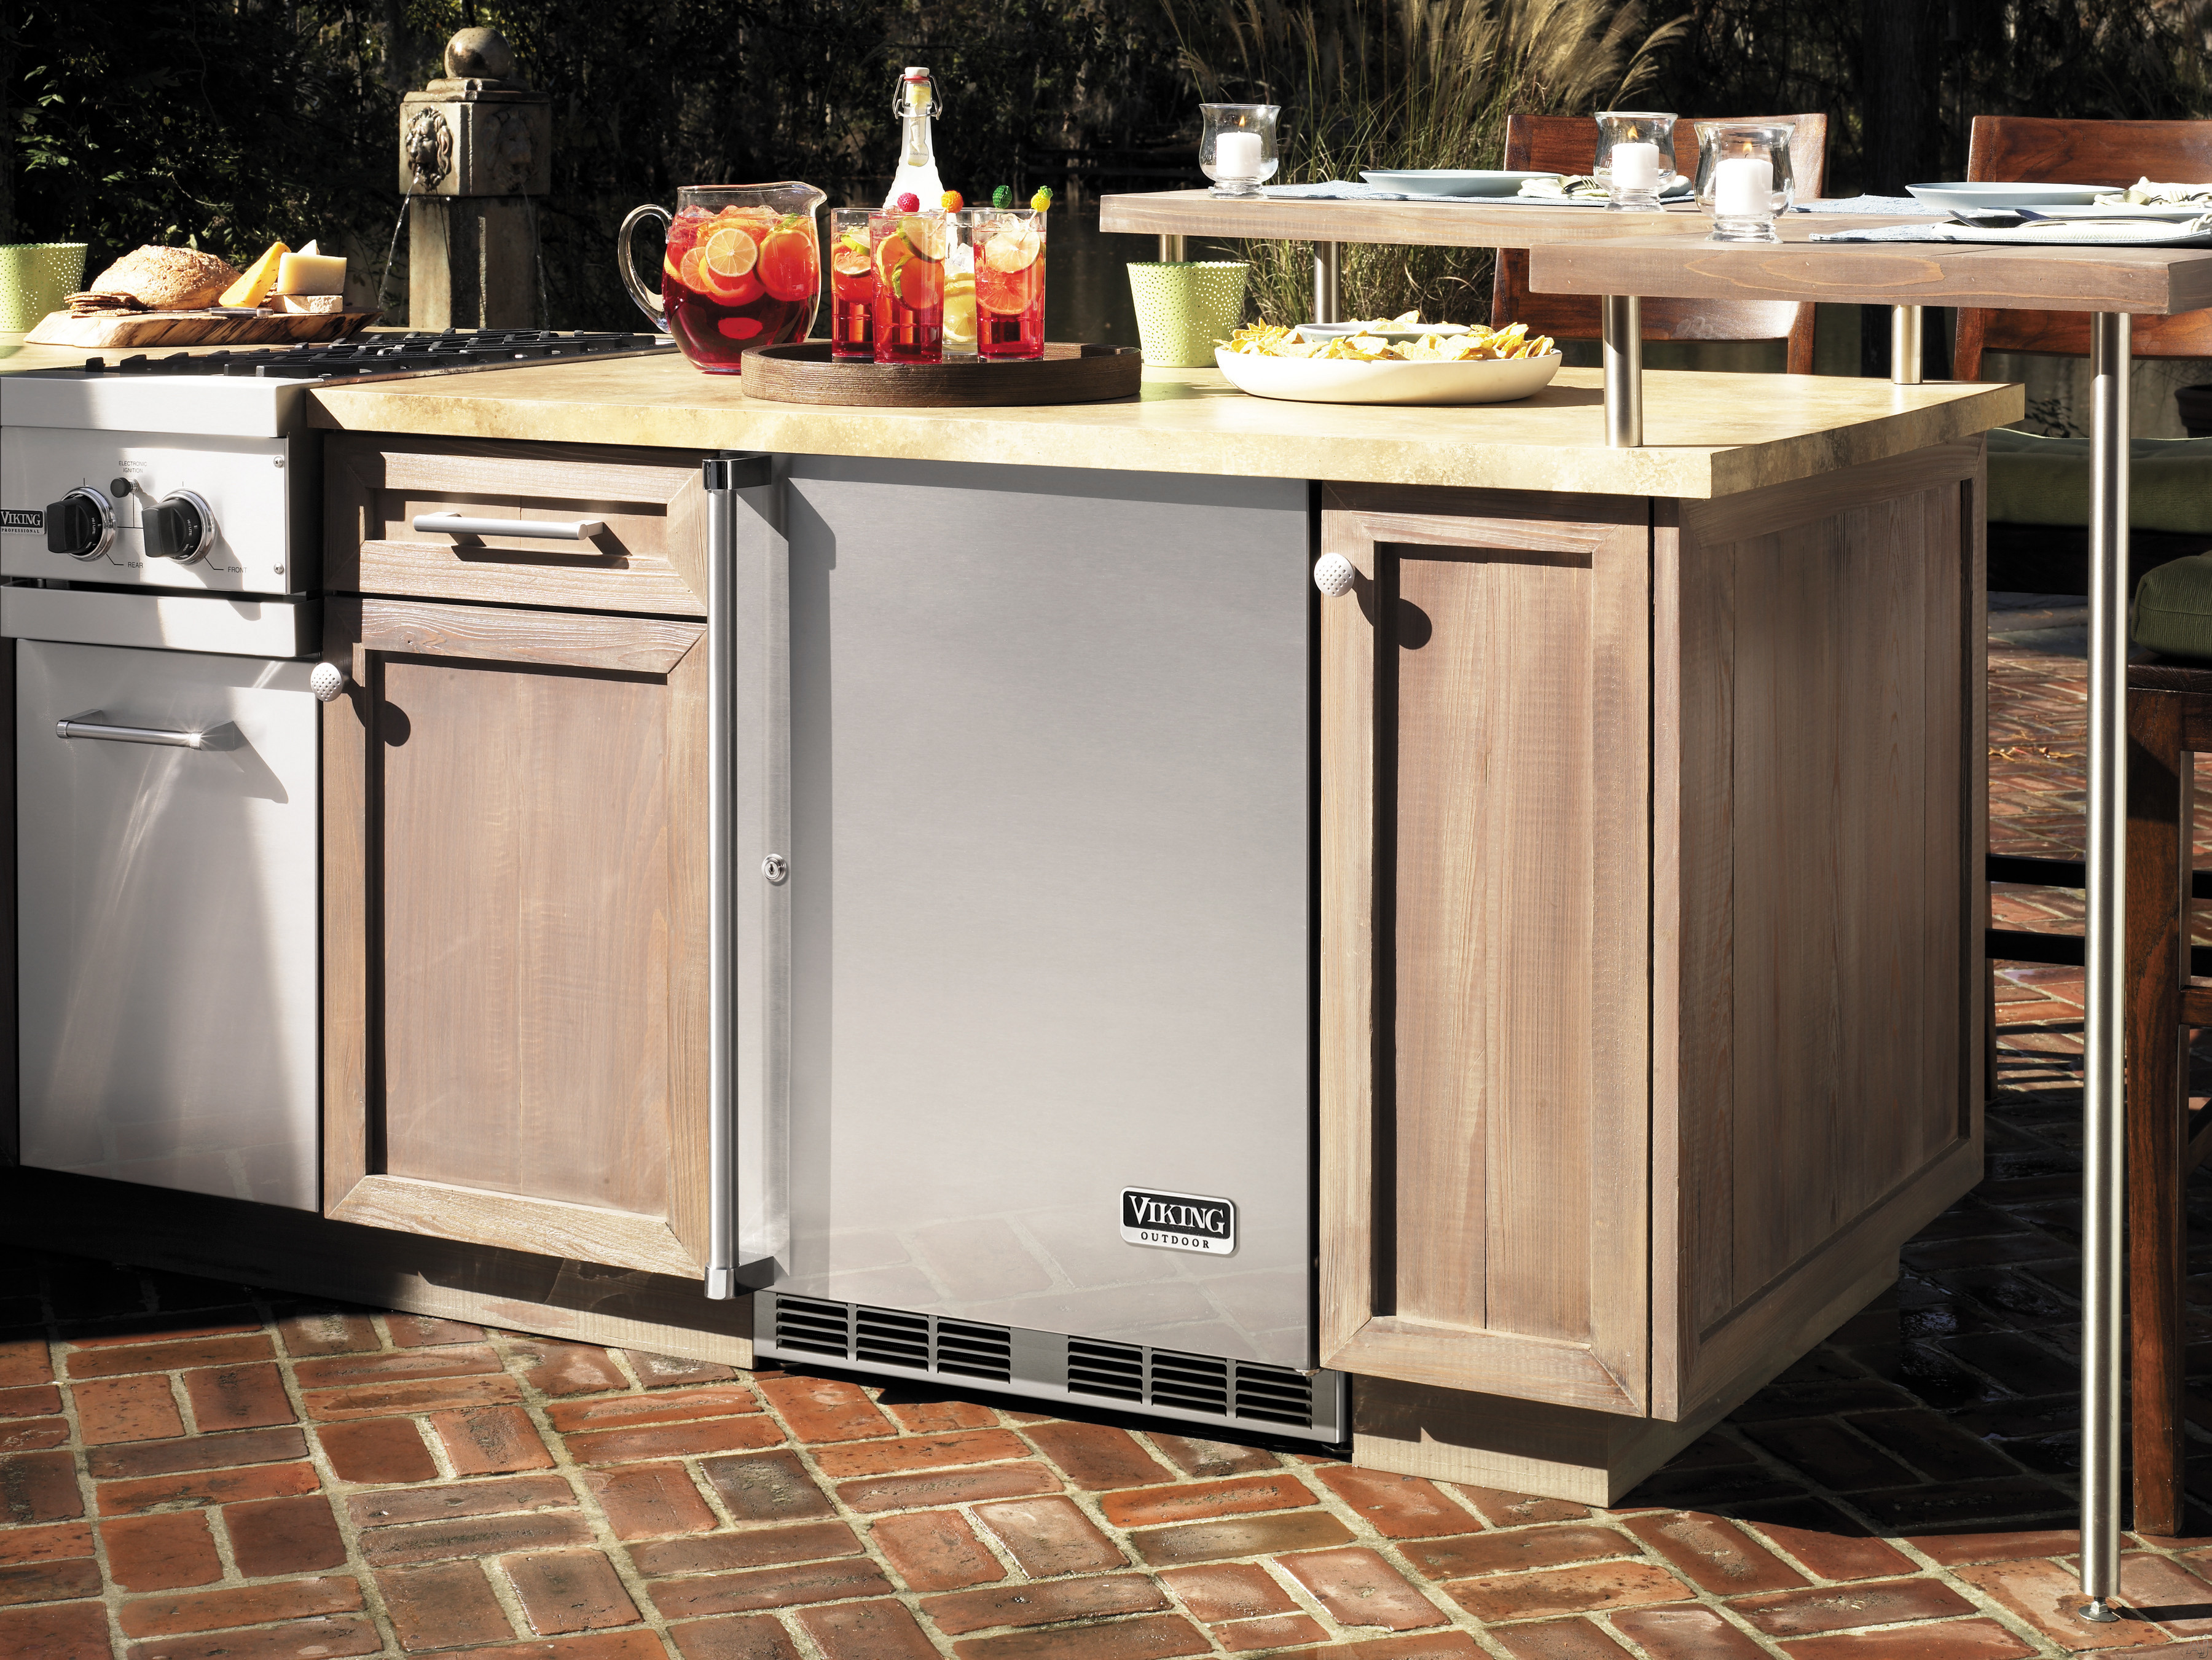 Viking vrco5240drss 24 undercounter outdoor refrigerator for Viking outdoor